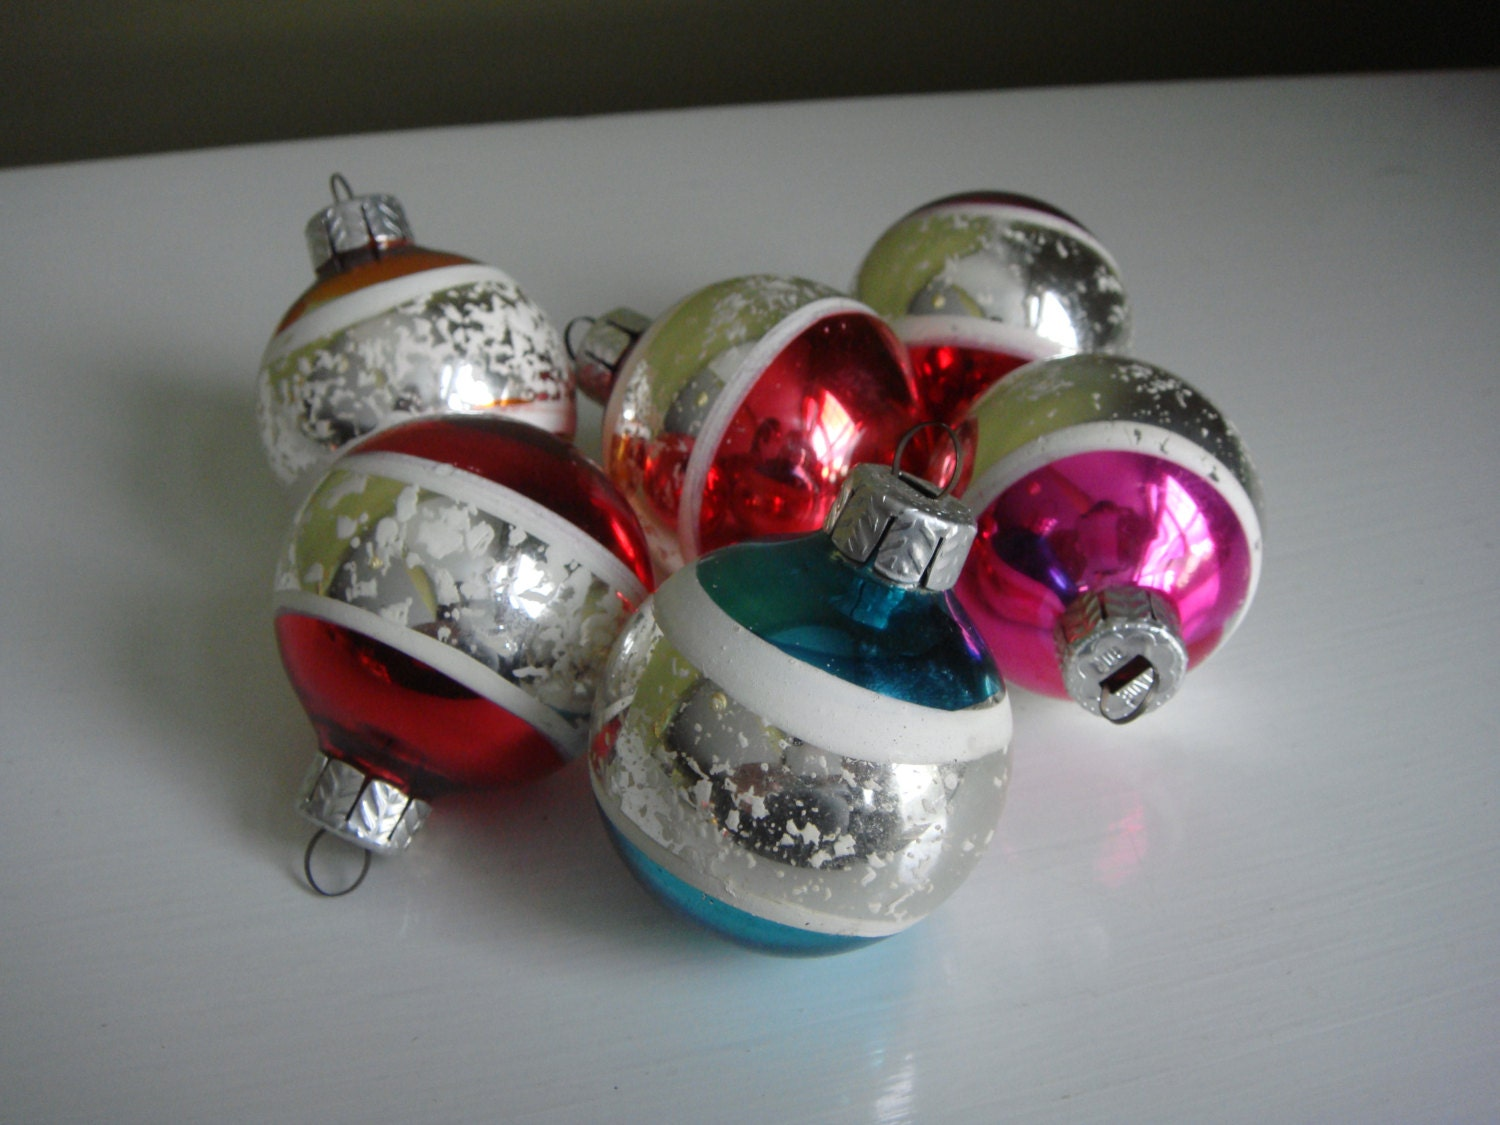 Vintage Christmas Ornaments Made in GDR East Germany Set